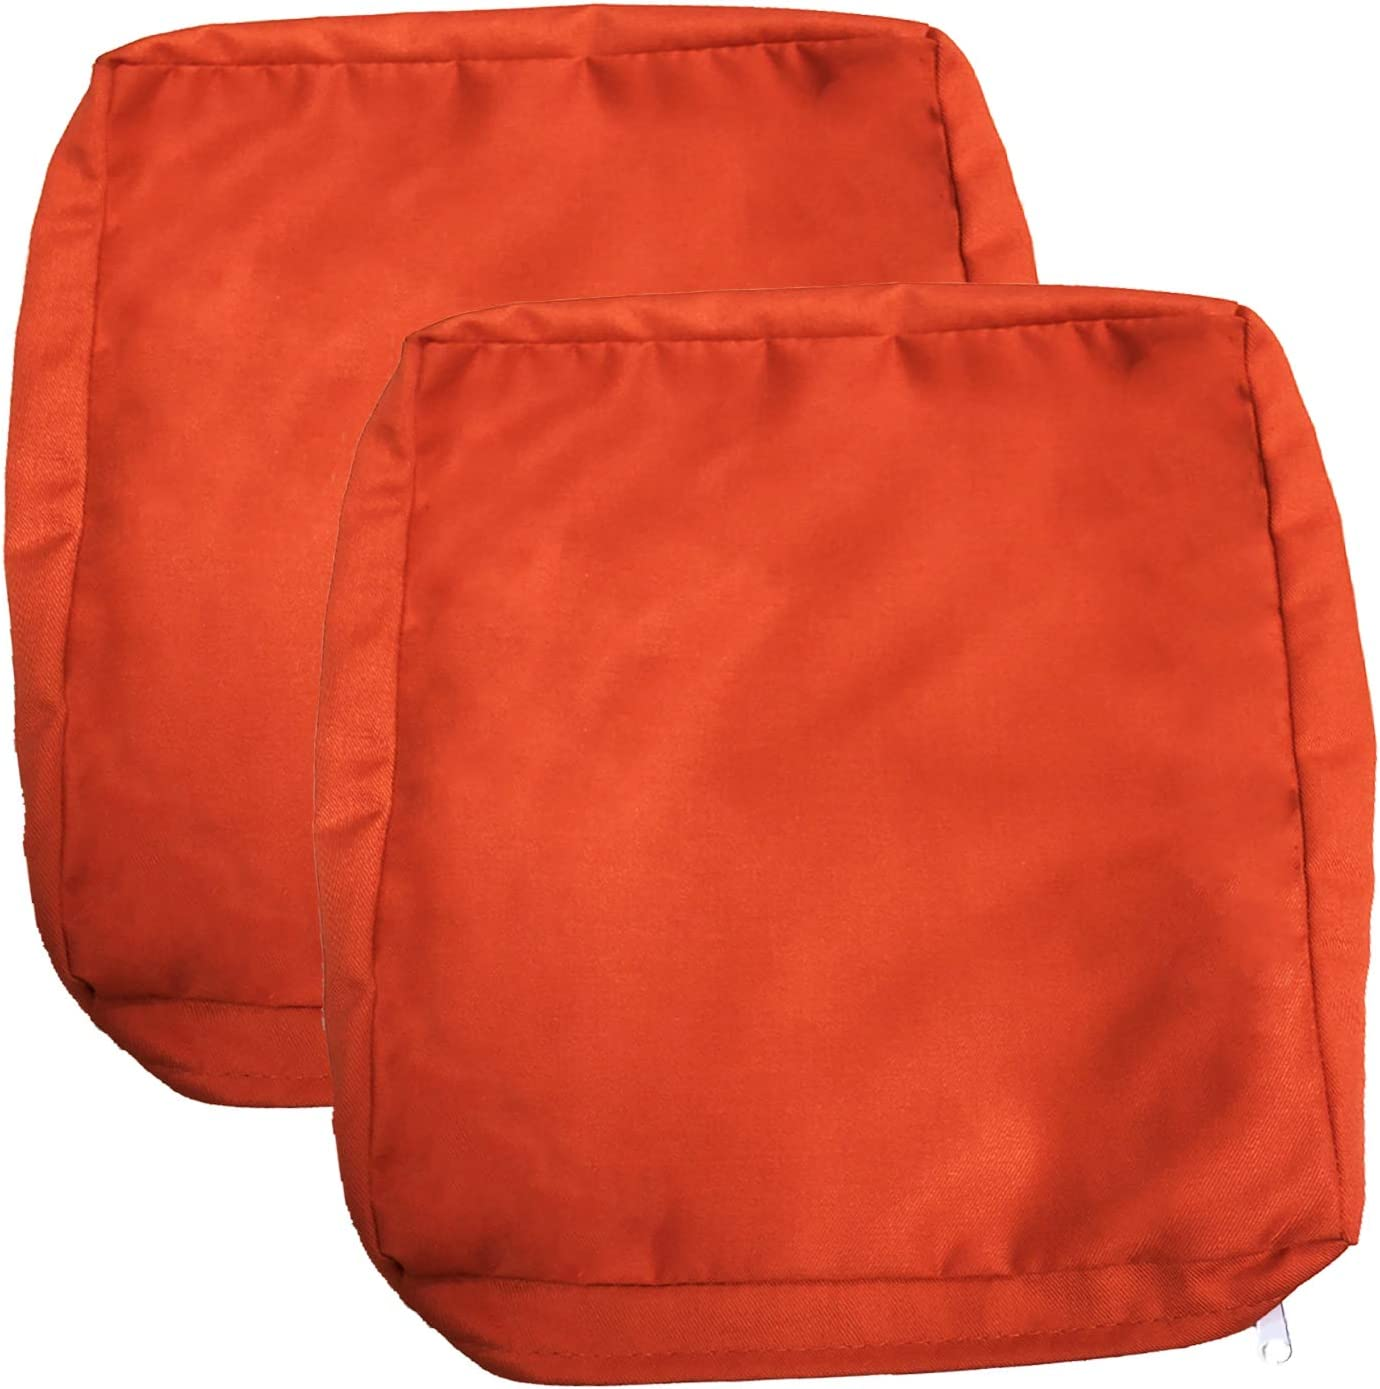 FLYMEI Outdoor Cushion Covers Set 2, Replacement Patio Cushion Covers 24 x 24 x 4 Inch, Orange Washable Cushion Pillow Seat Covers, Large Chair Seat Covers Only Patio Cushion Slipcovers